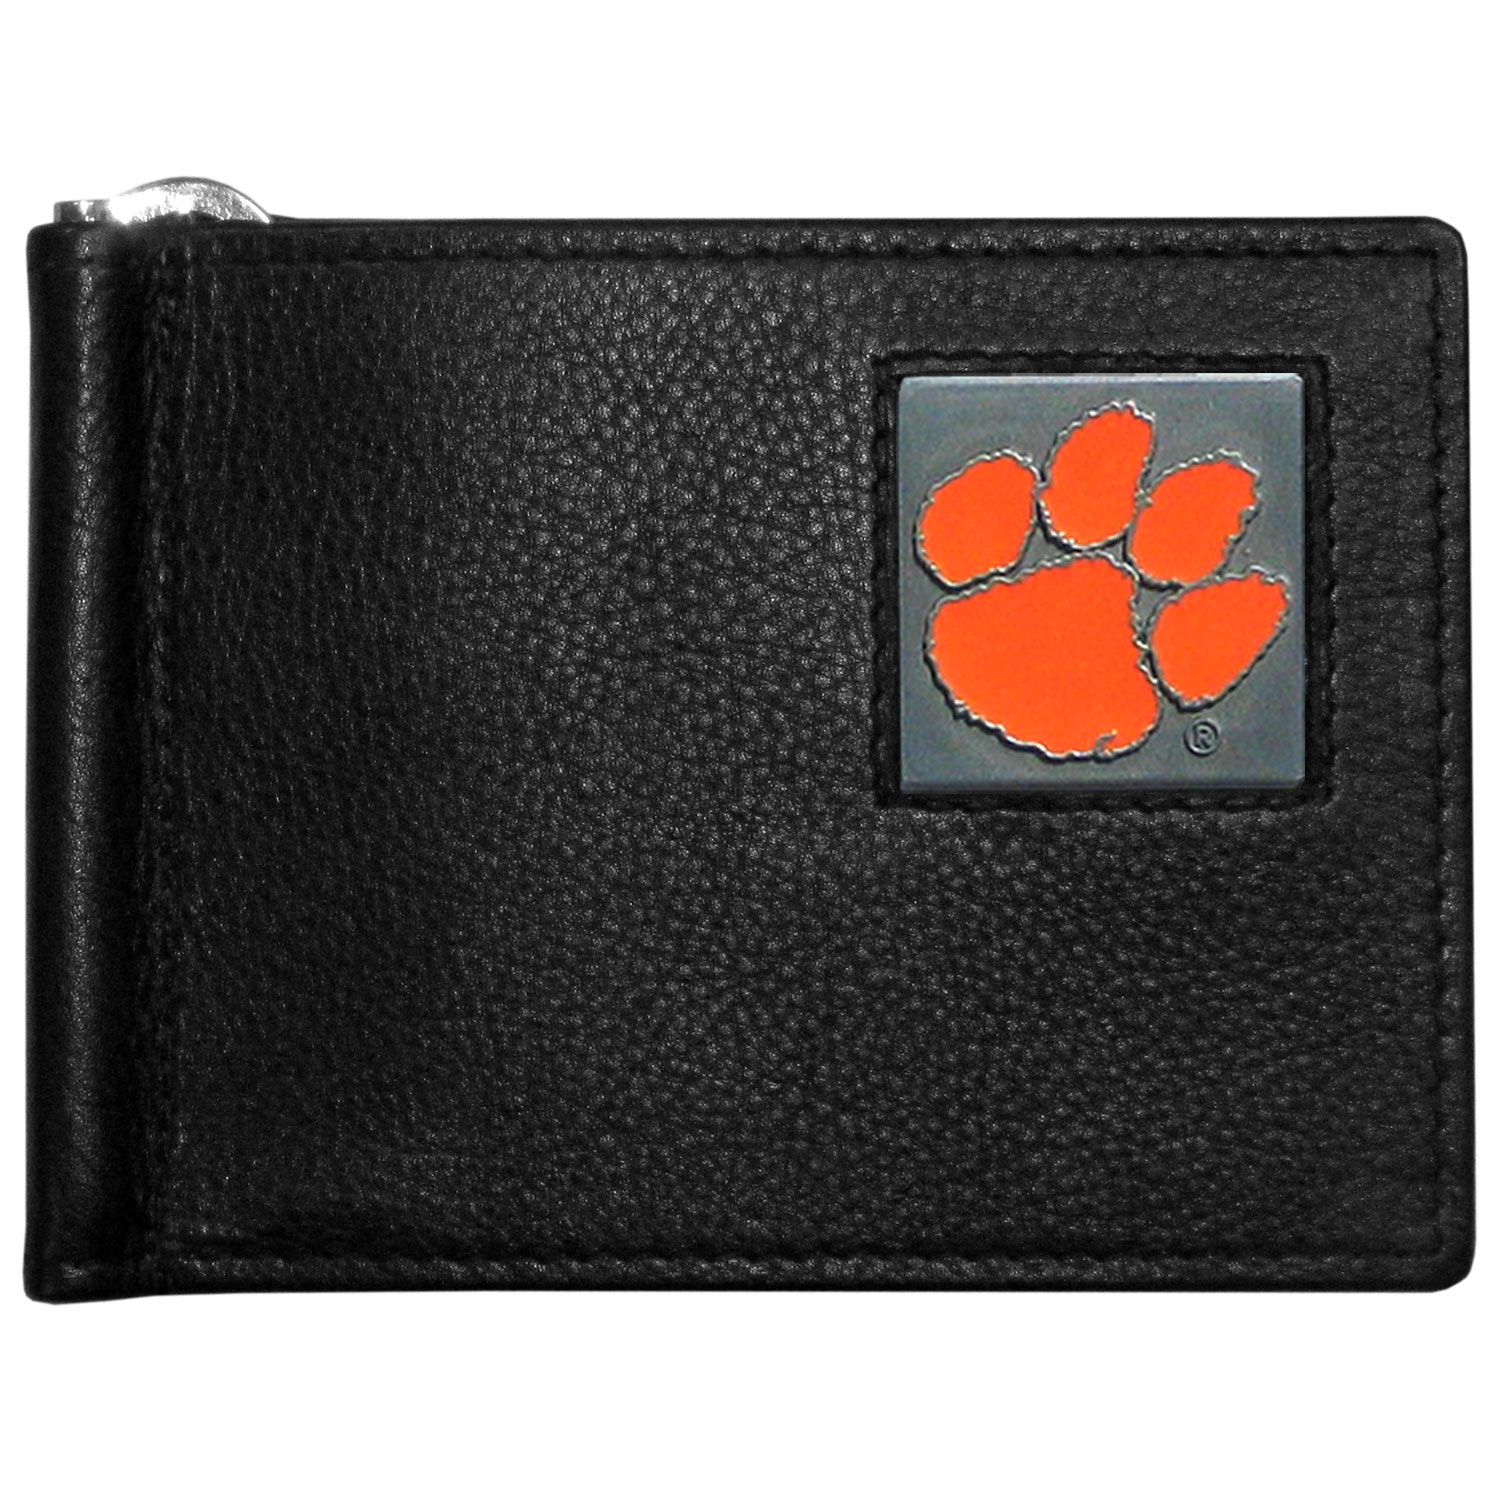 Clemson Tigers Leather Bill Clip Wallet - This cool new style wallet features an inner, metal bill clip that lips up for easy access. The super slim wallet holds tons of stuff with ample pockets, credit card slots & windowed ID slot.  The wallet is made of genuine fine grain leather and it finished with a metal Clemson Tigers emblem. The wallet is shipped in gift box packaging.